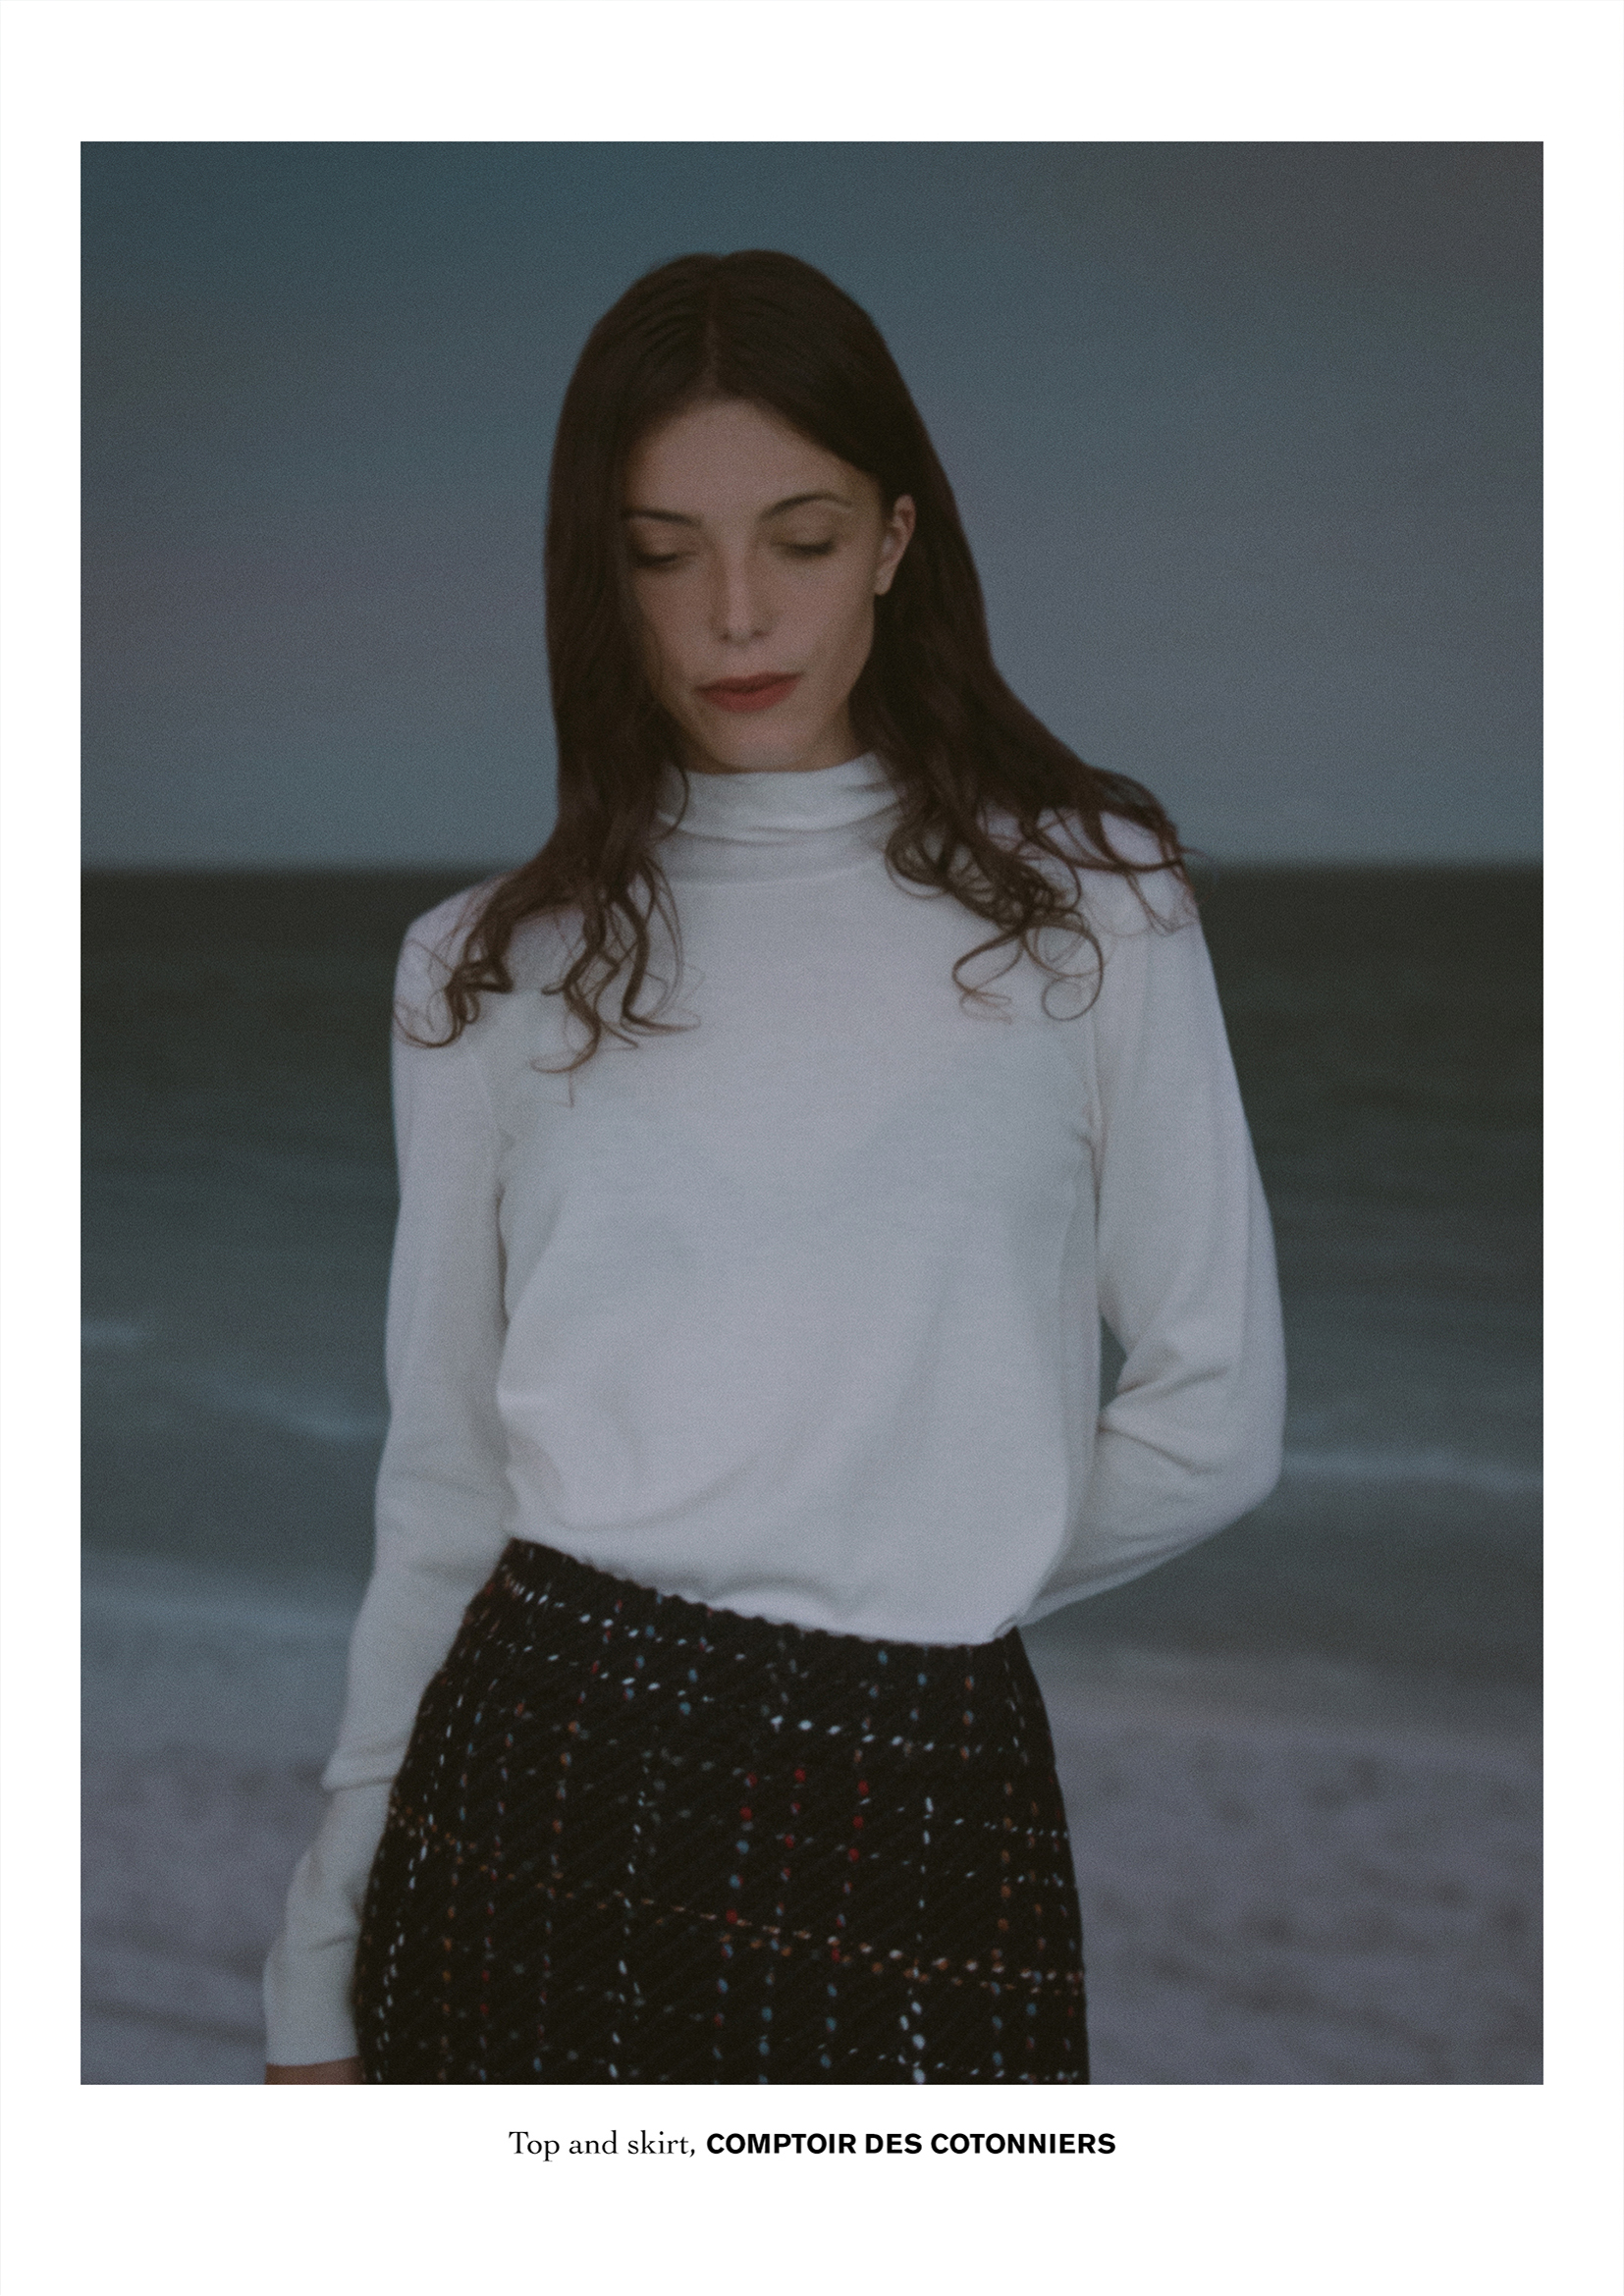 Art direction, photography and styling for online editorial